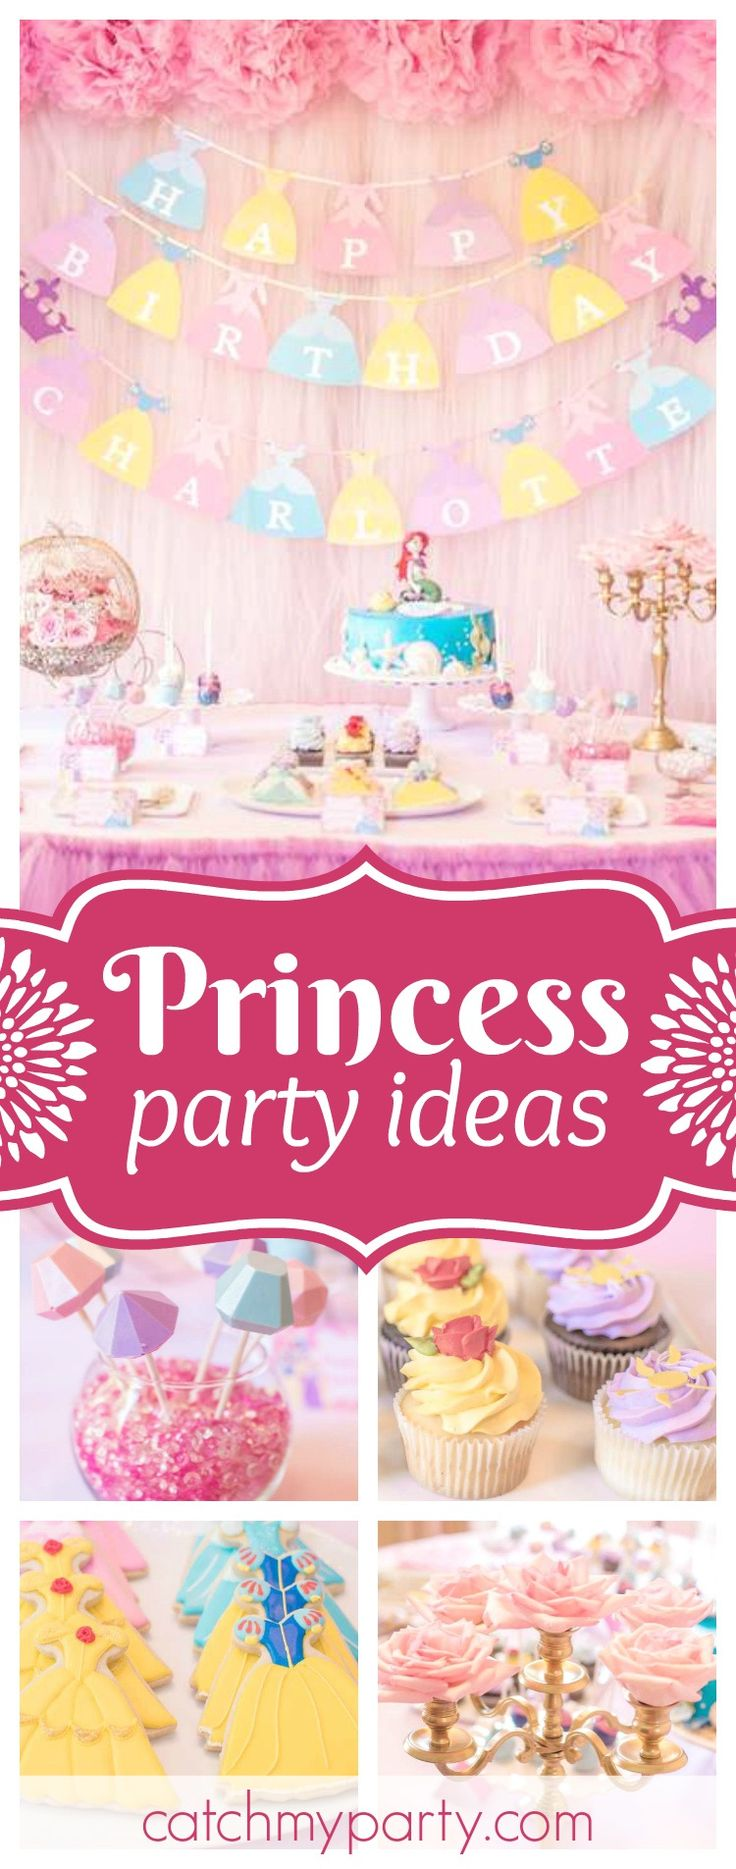 Take a look at this wonderful princess birthday party! The dessert table is so pretty!! See more party ideas and share yours at CatchMyParty.com